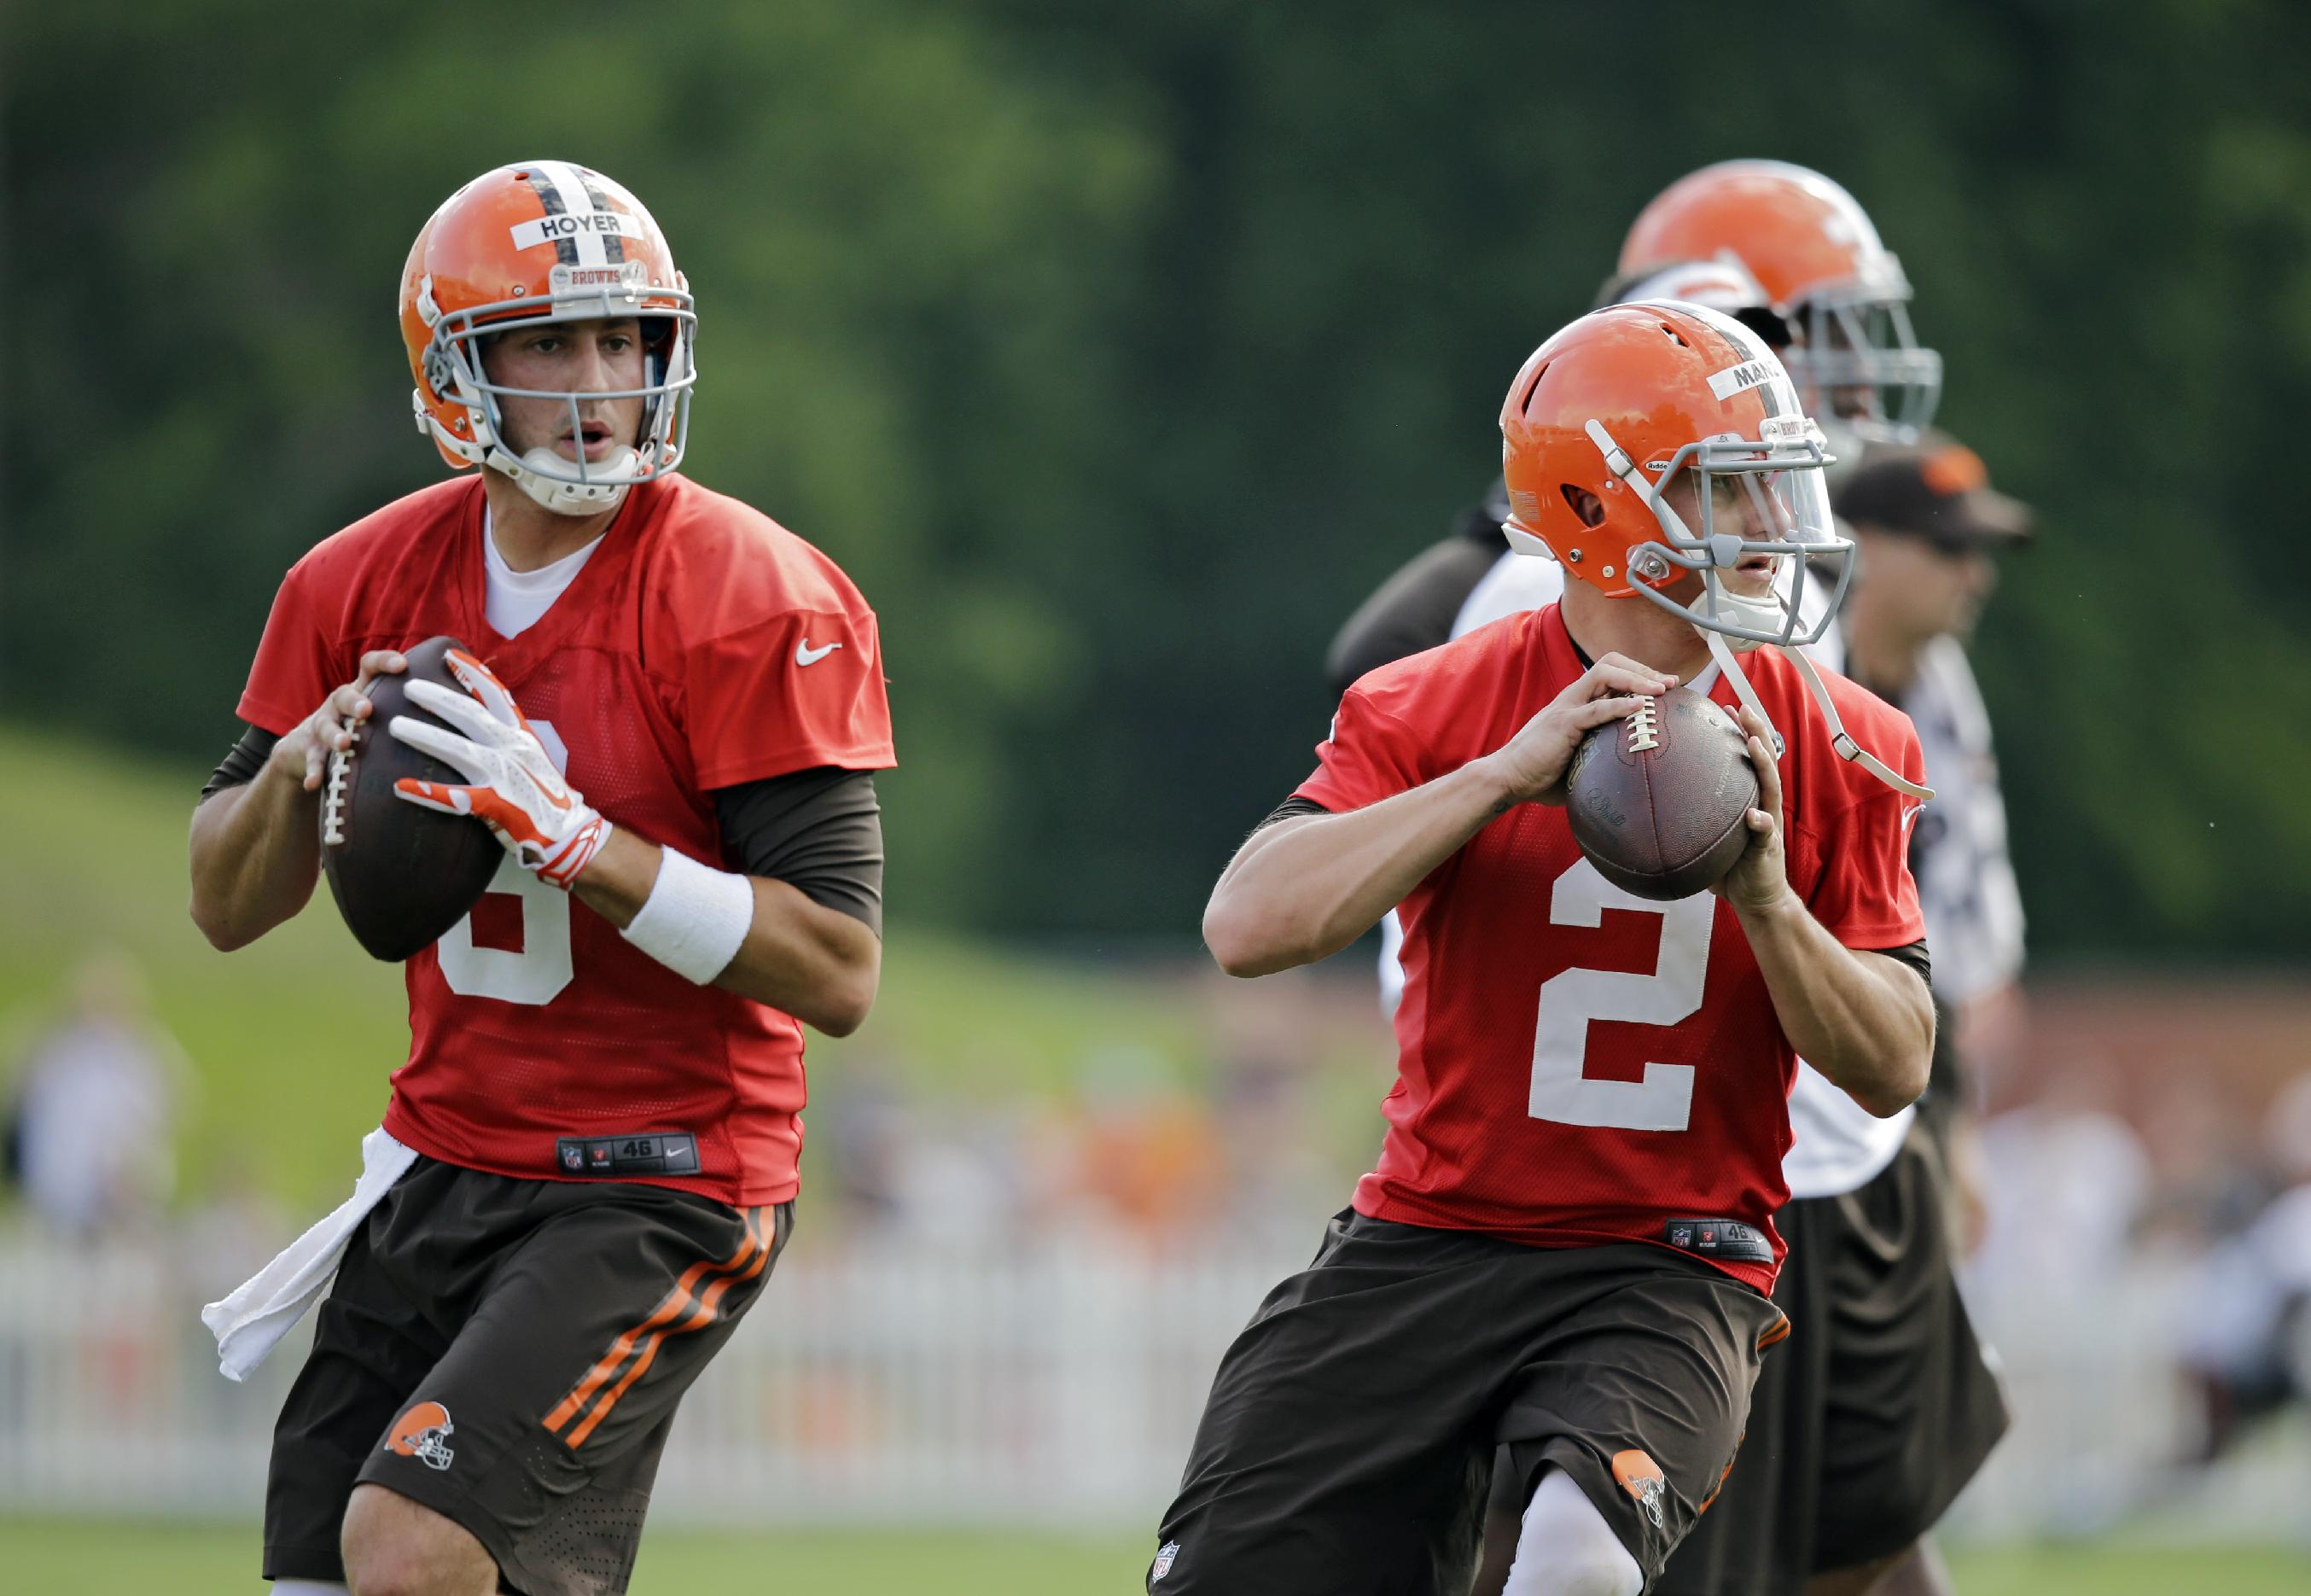 Browns fans flock to see Johnny Football